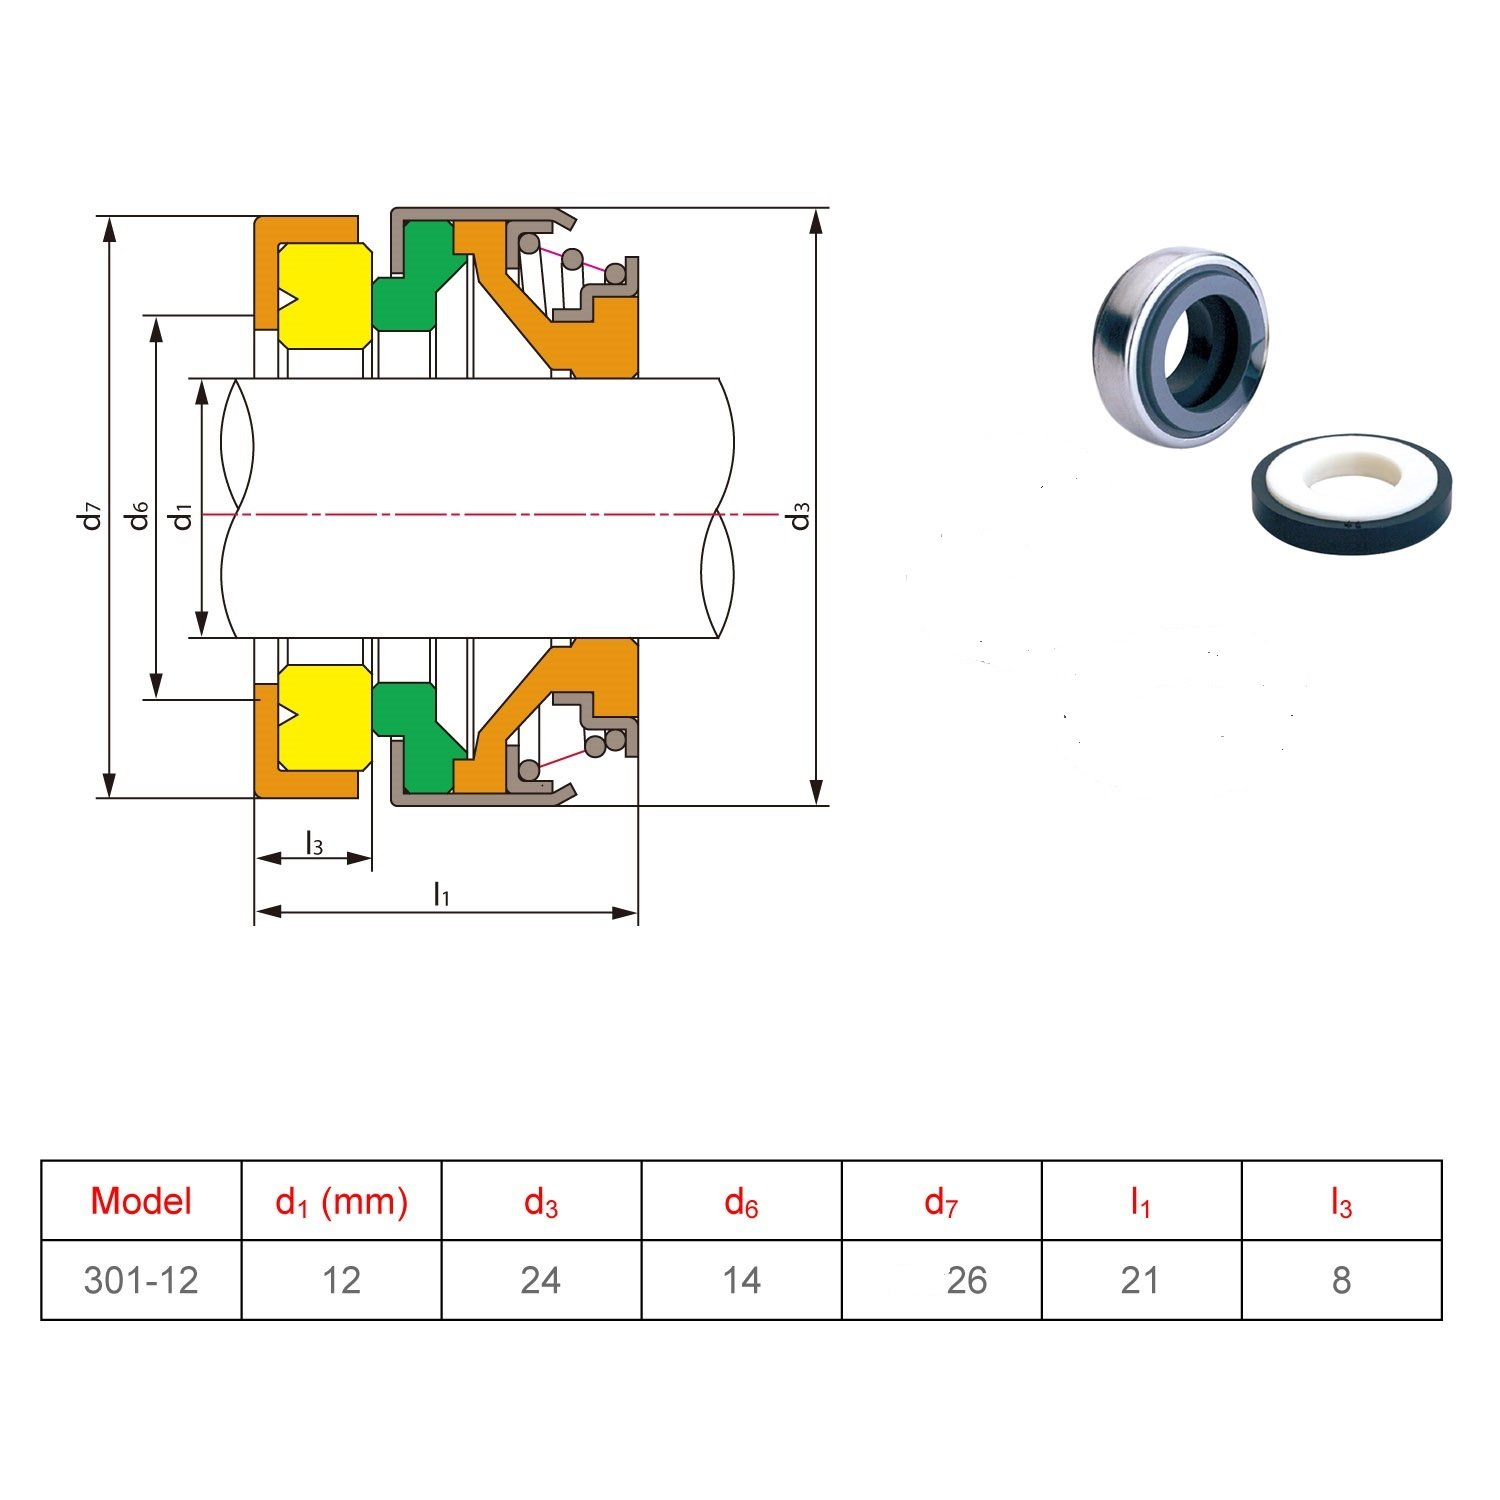 Gogoal Mechanical Seal 301 Shaft Size 12mm Replace Aesseal B01 Taco Wiring Diagram Sf5 And Flowserve 118 For Water Pump